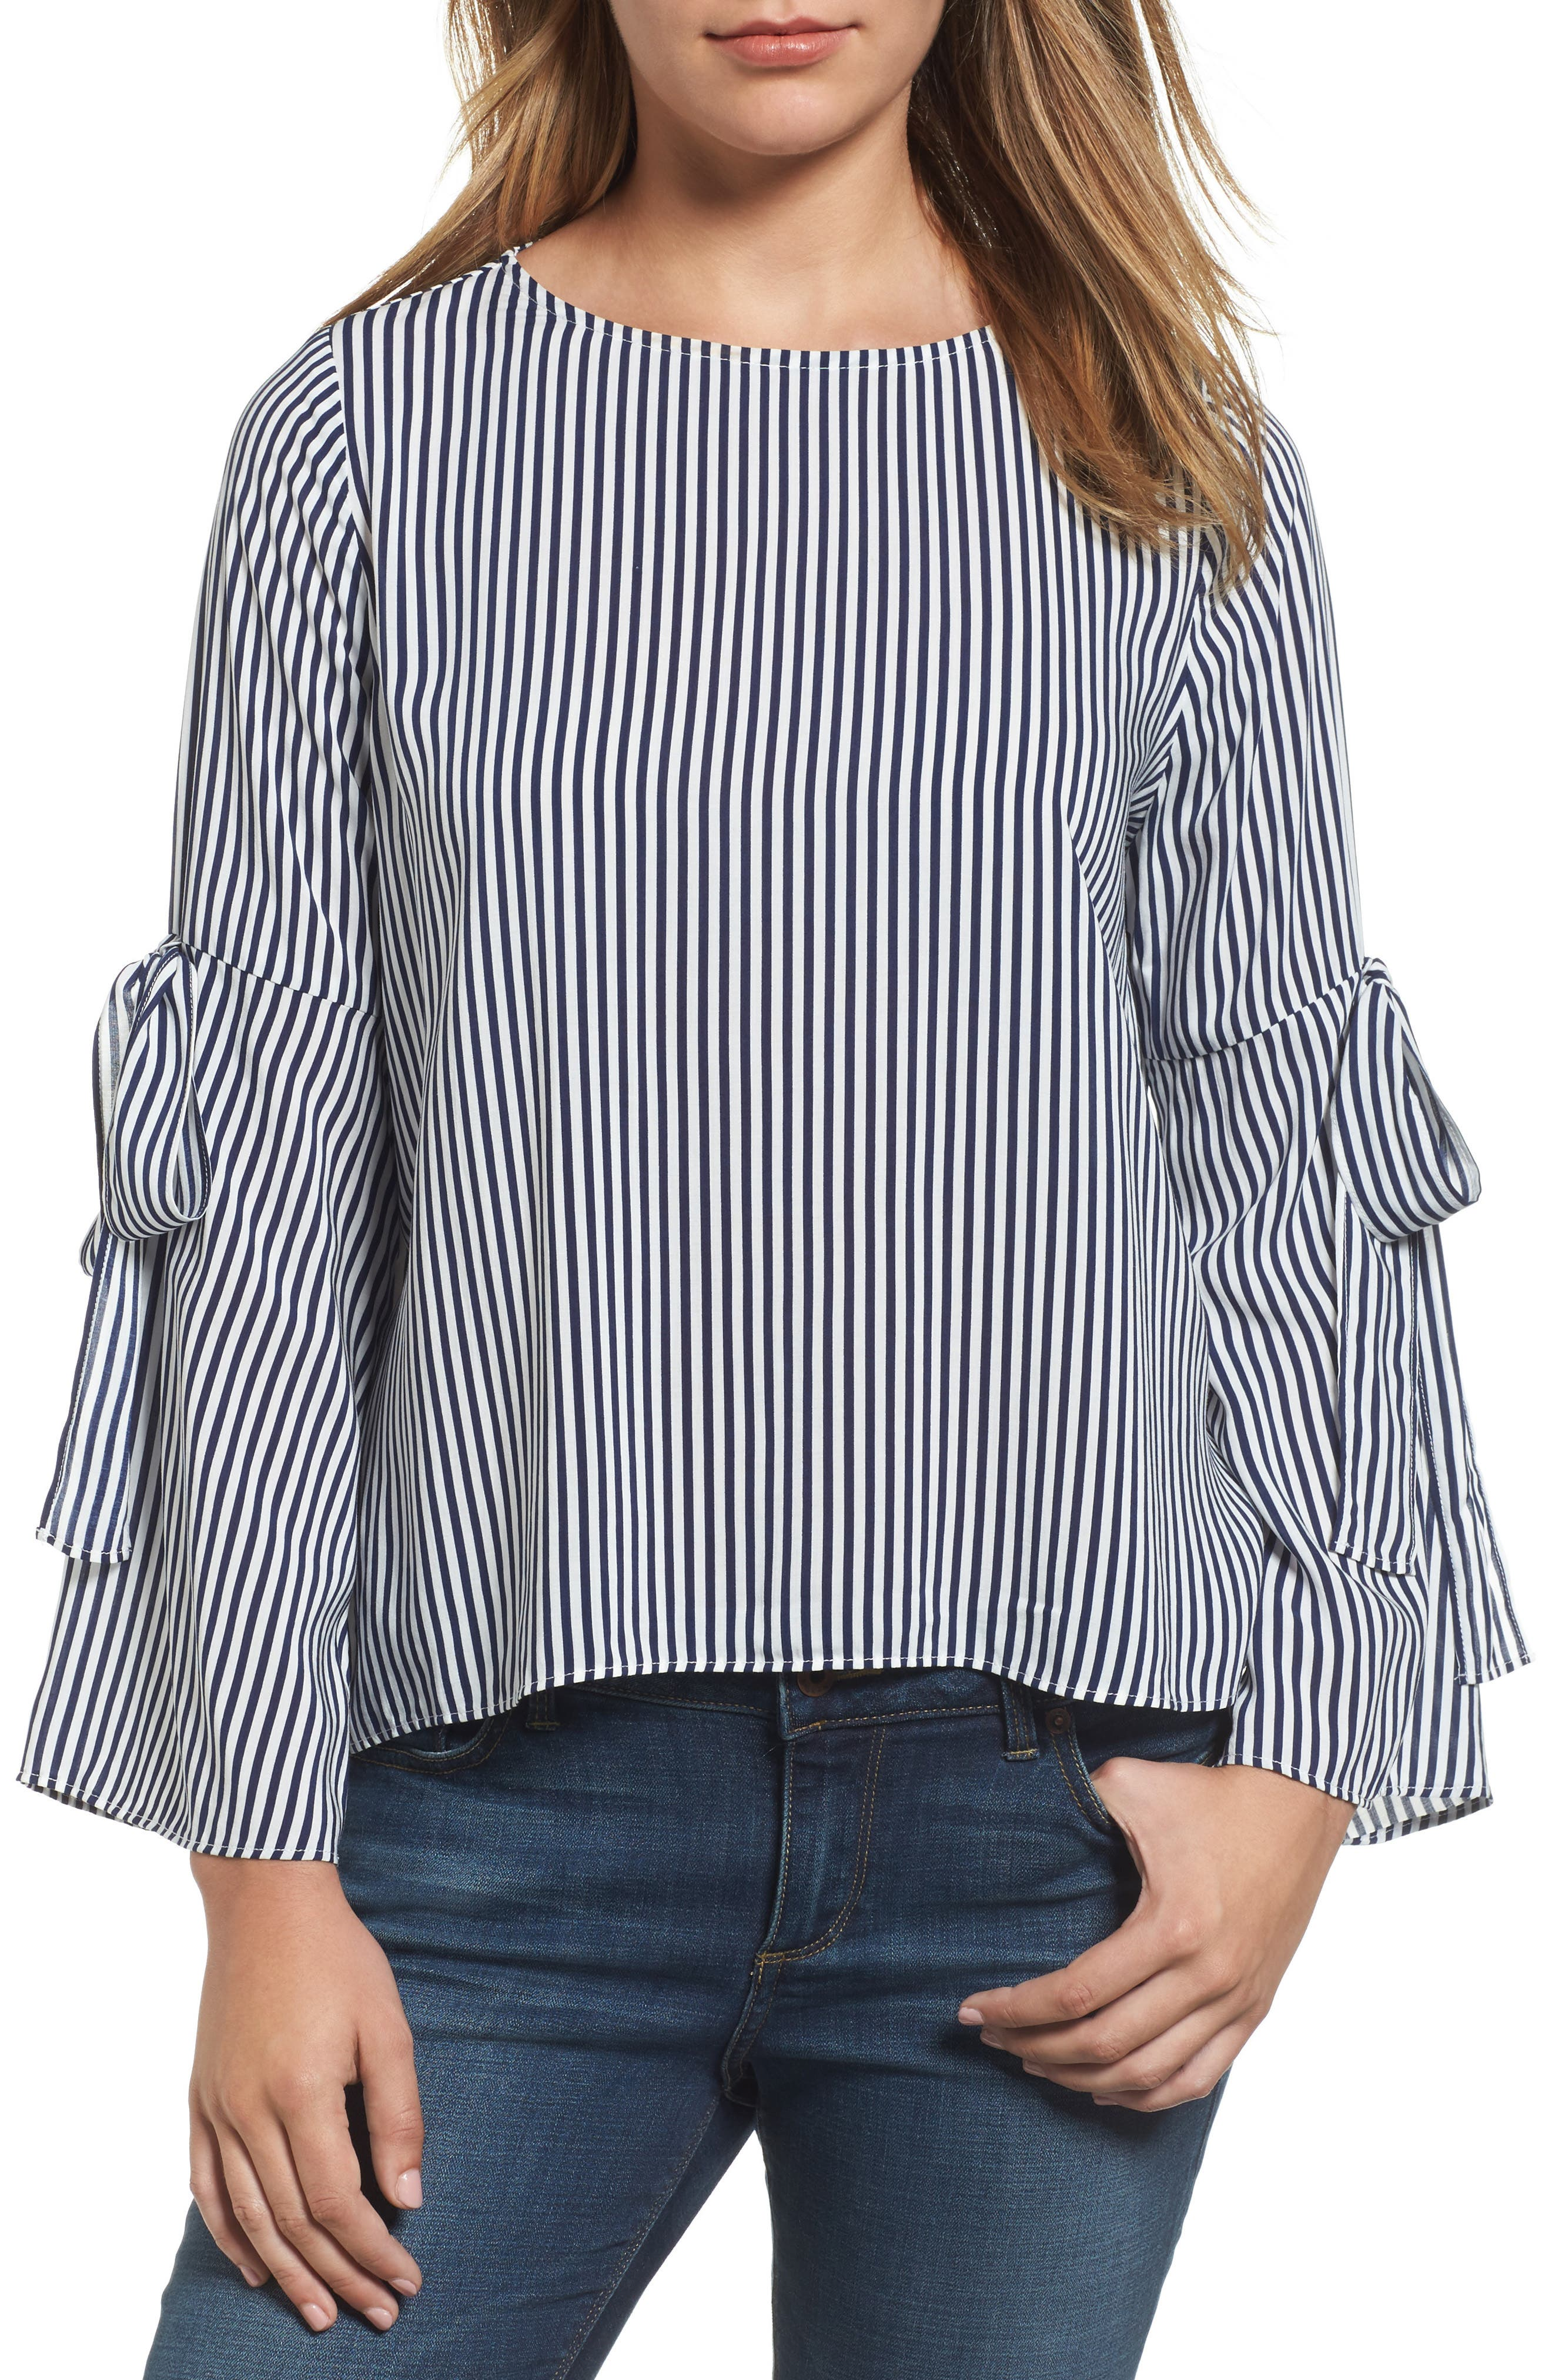 Velvet by Graham & Spencer Stripe Tie Bell Sleeve Blouse